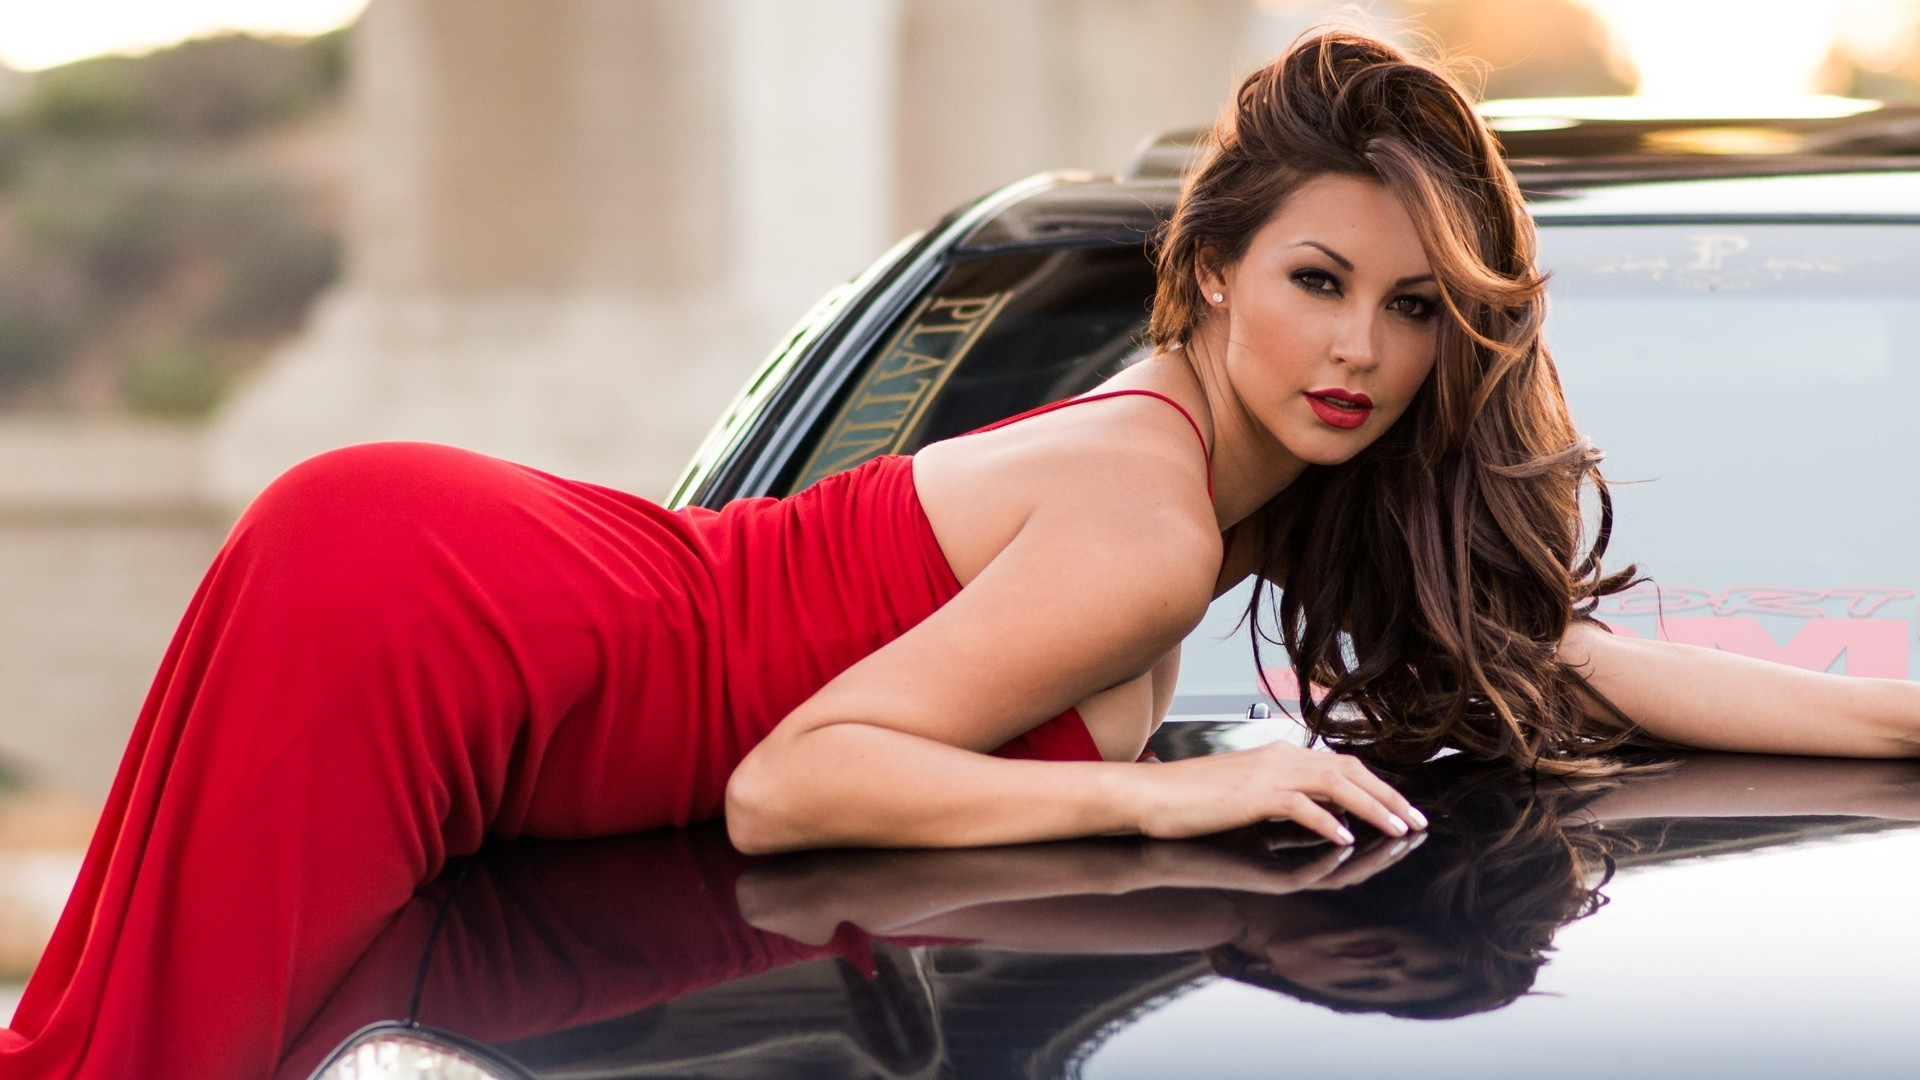 People 1920x1080 Melyssa Grace car brunette women model red dress pearl earrings dress brown eyes long hair red lipstick glamour women with cars ass bent over vehicle